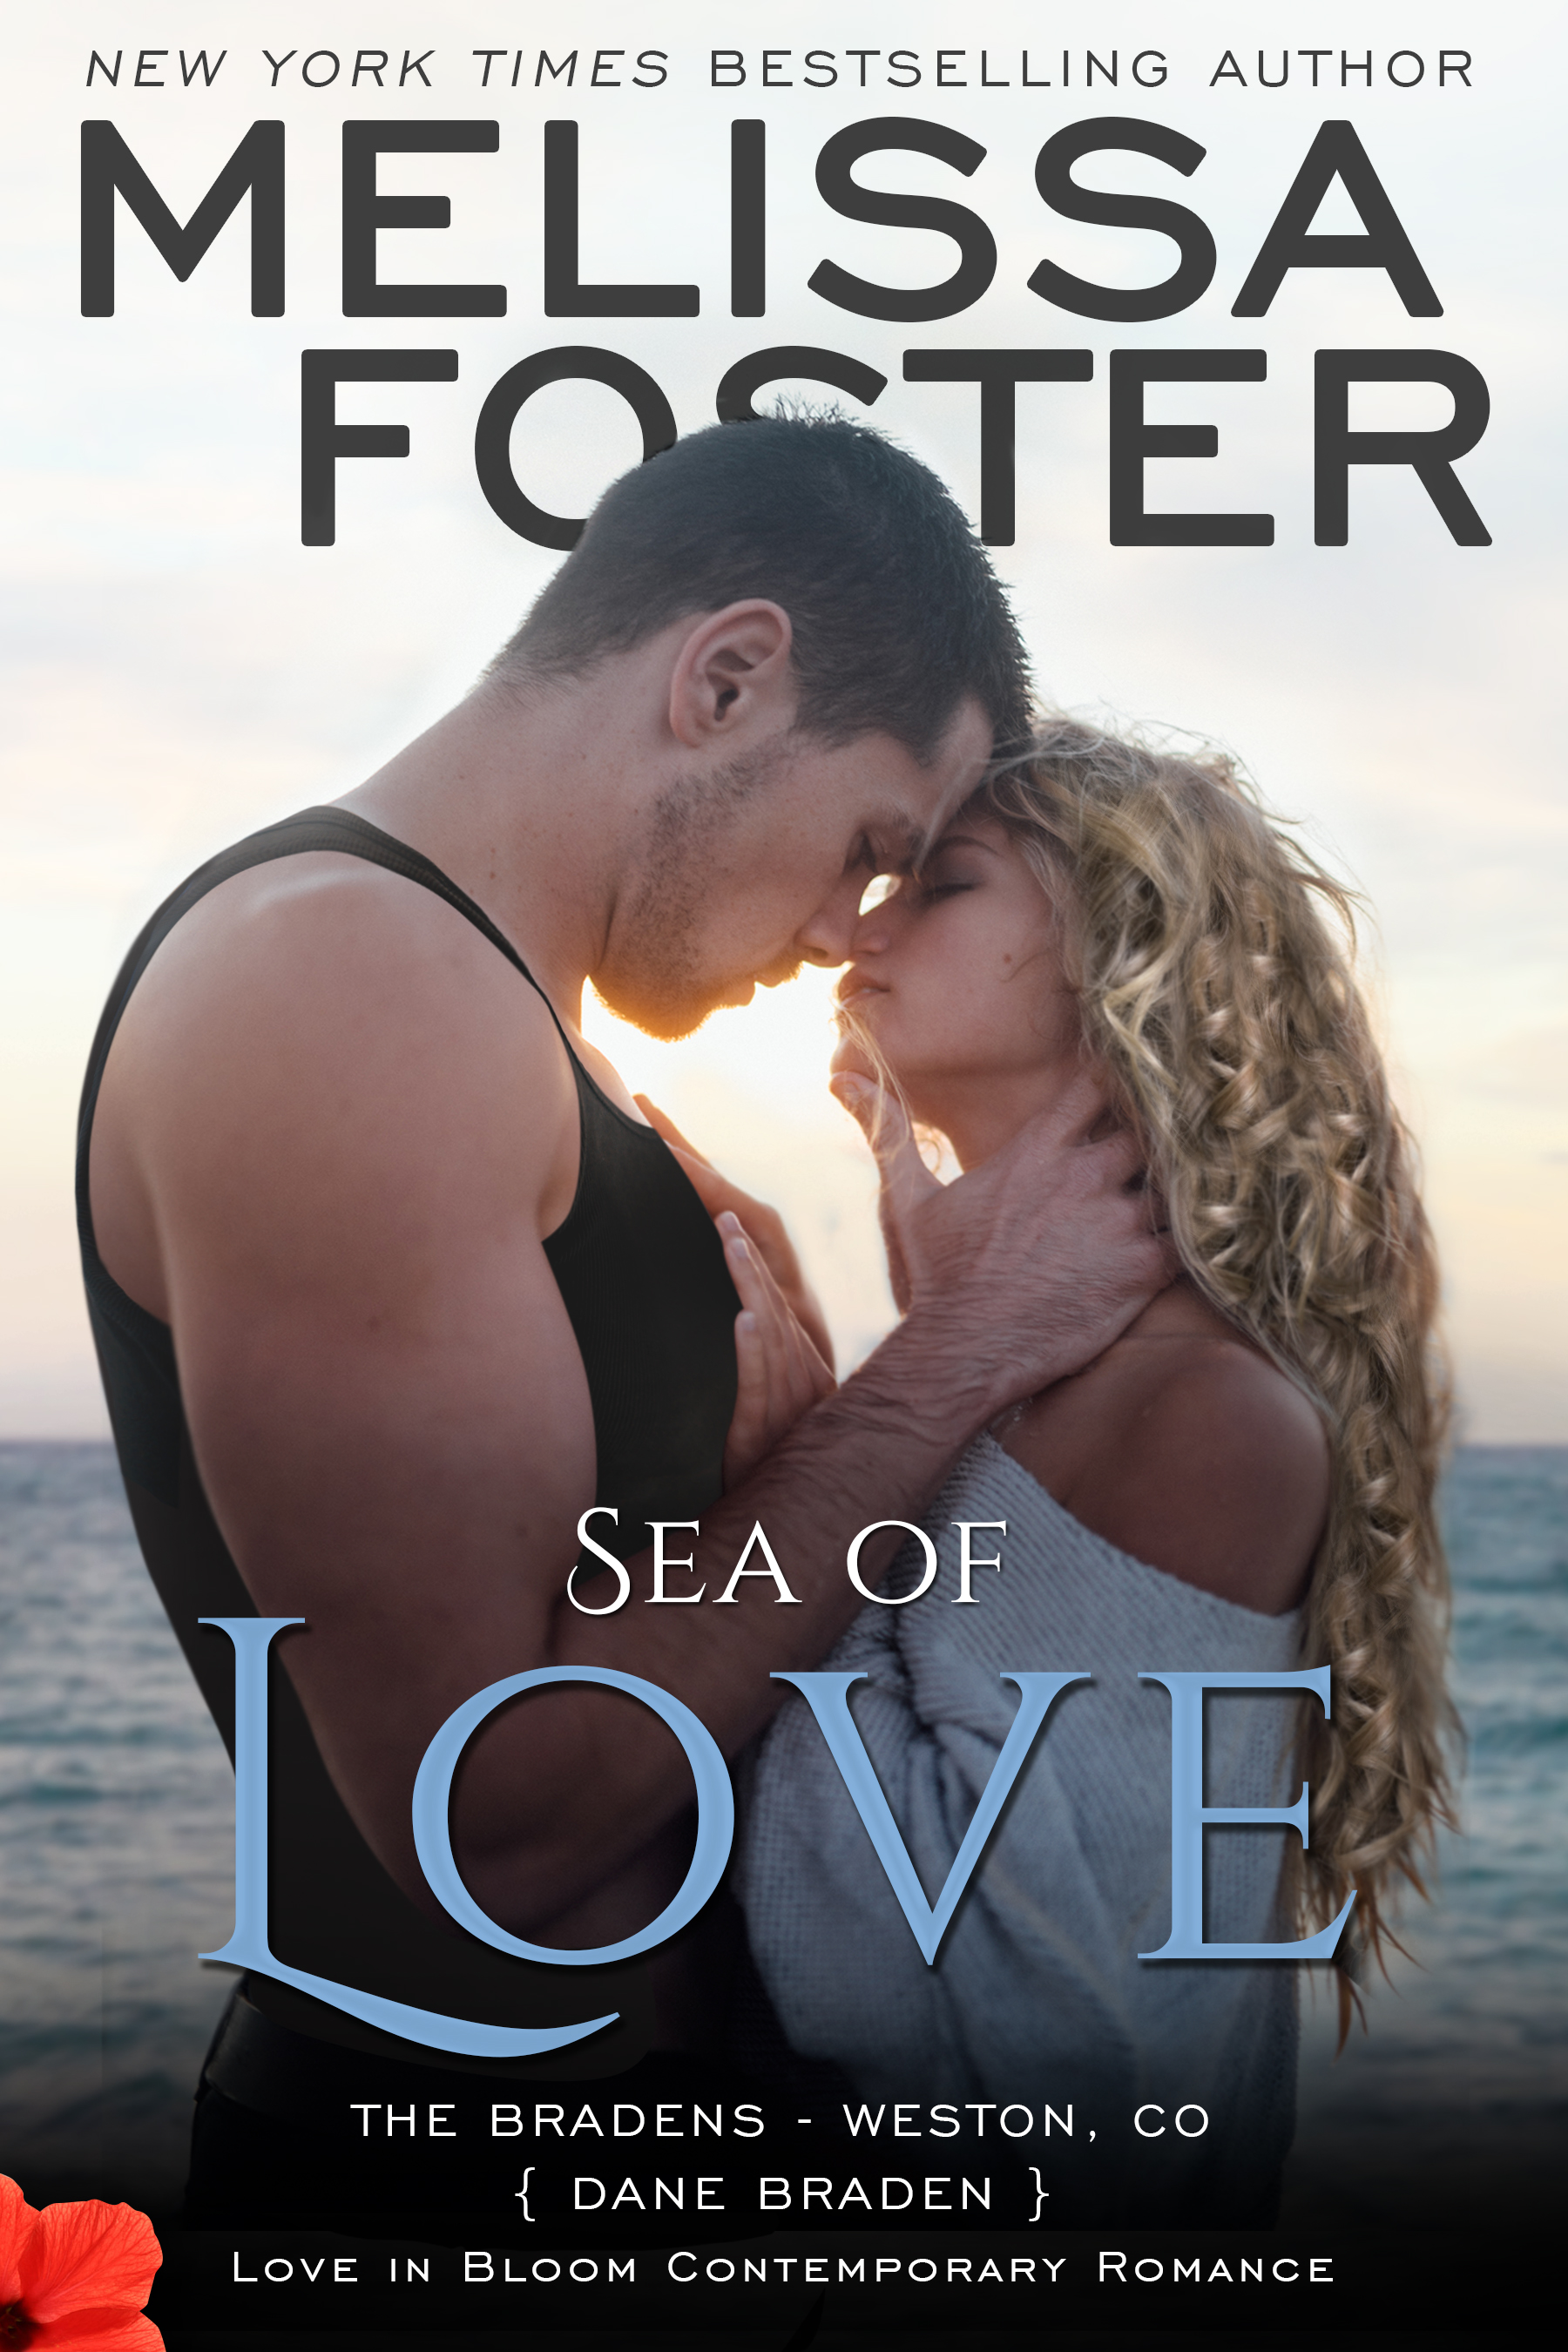 Sea of Love (Love in Bloom #7; Love in Bloom: The Bradens #4; The Bradens at Weston, CO #4)